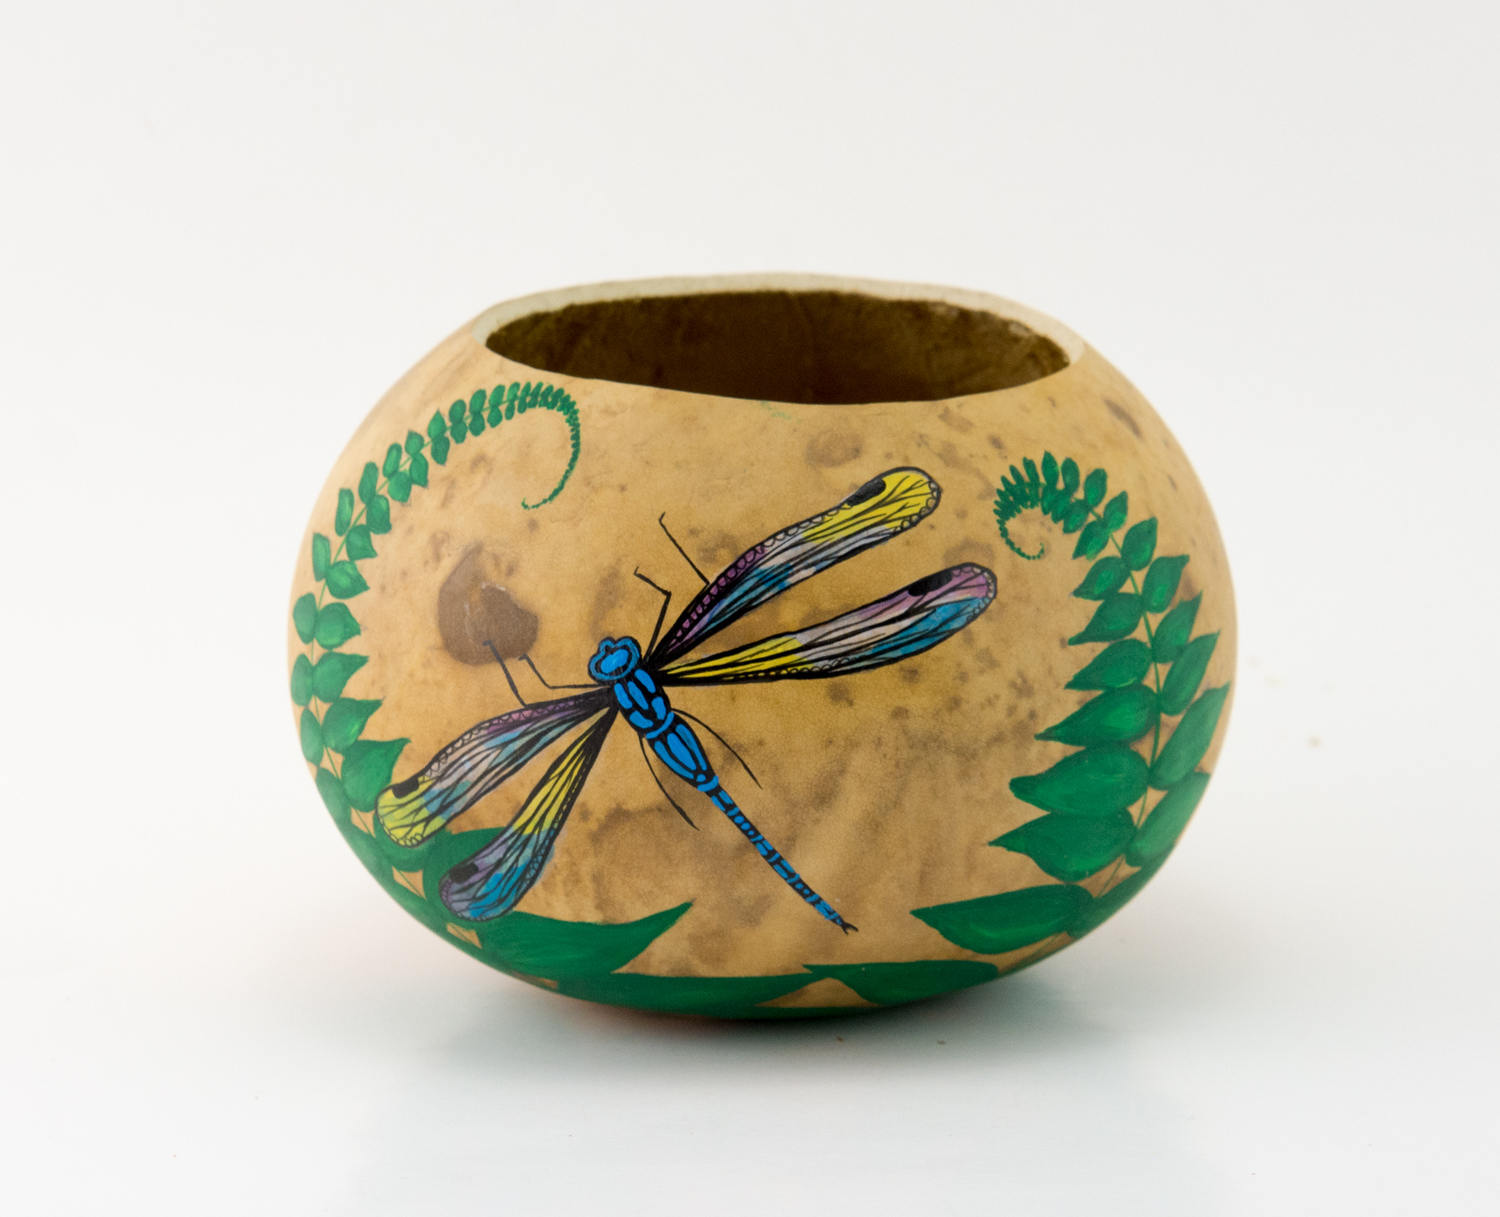 Dragonfly - Gourd Art - Gourd Bowl - Dragonfly Collector - Perfect gift - OOAK - Gourdaments